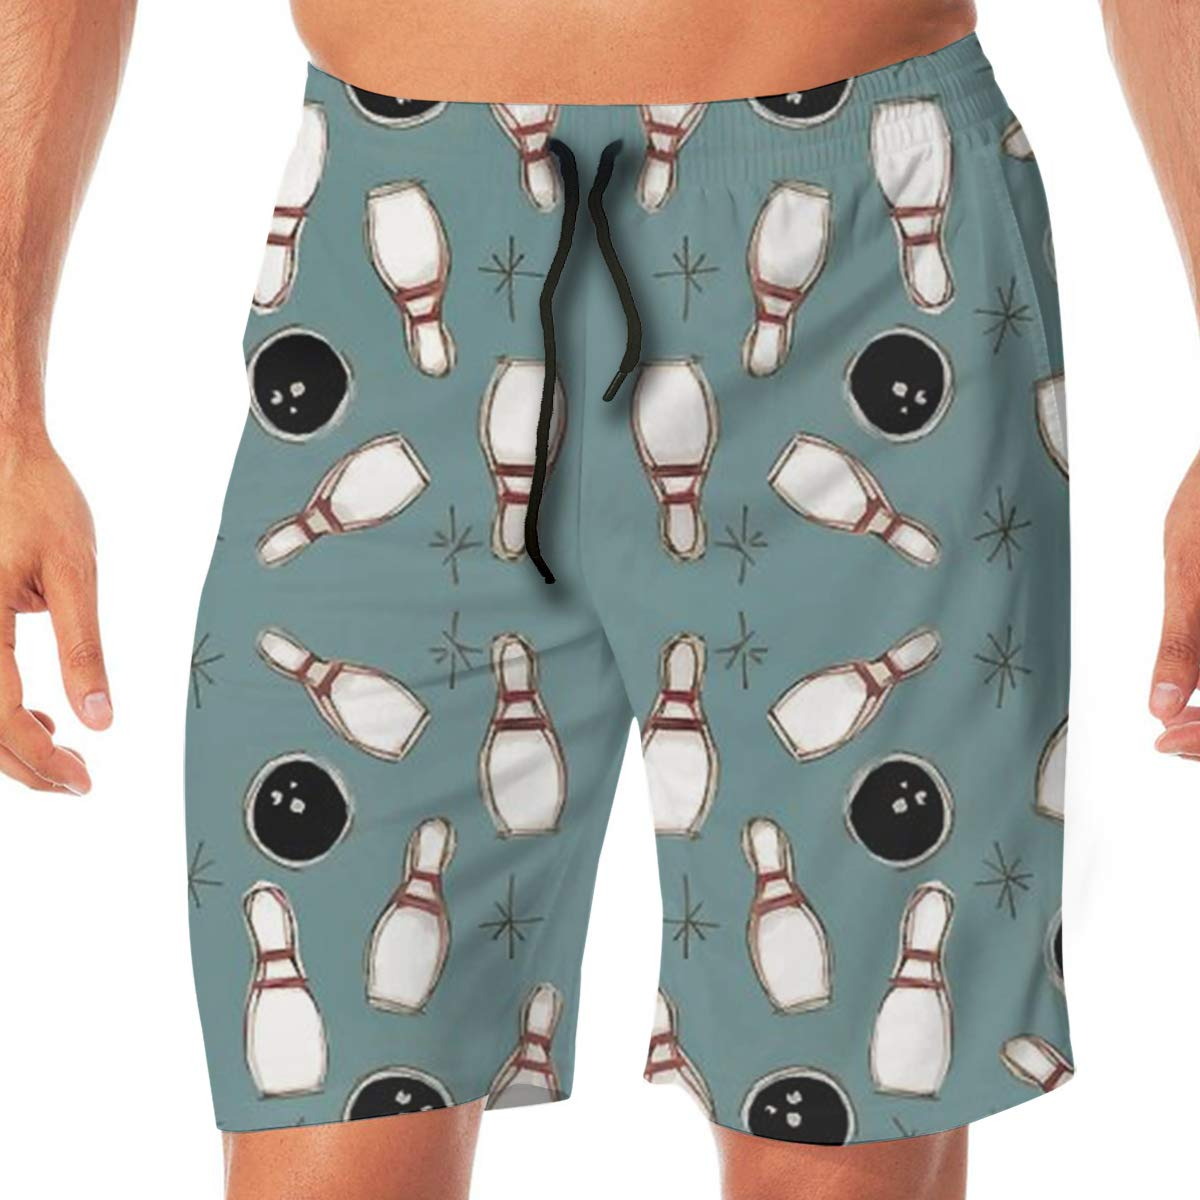 TR2YU7YT Drawing Bowling Fun Casual Mens Swim Trunks Quick Dry Printed Beach Shorts Summer Boardshorts Bathing Suits with Drawstring